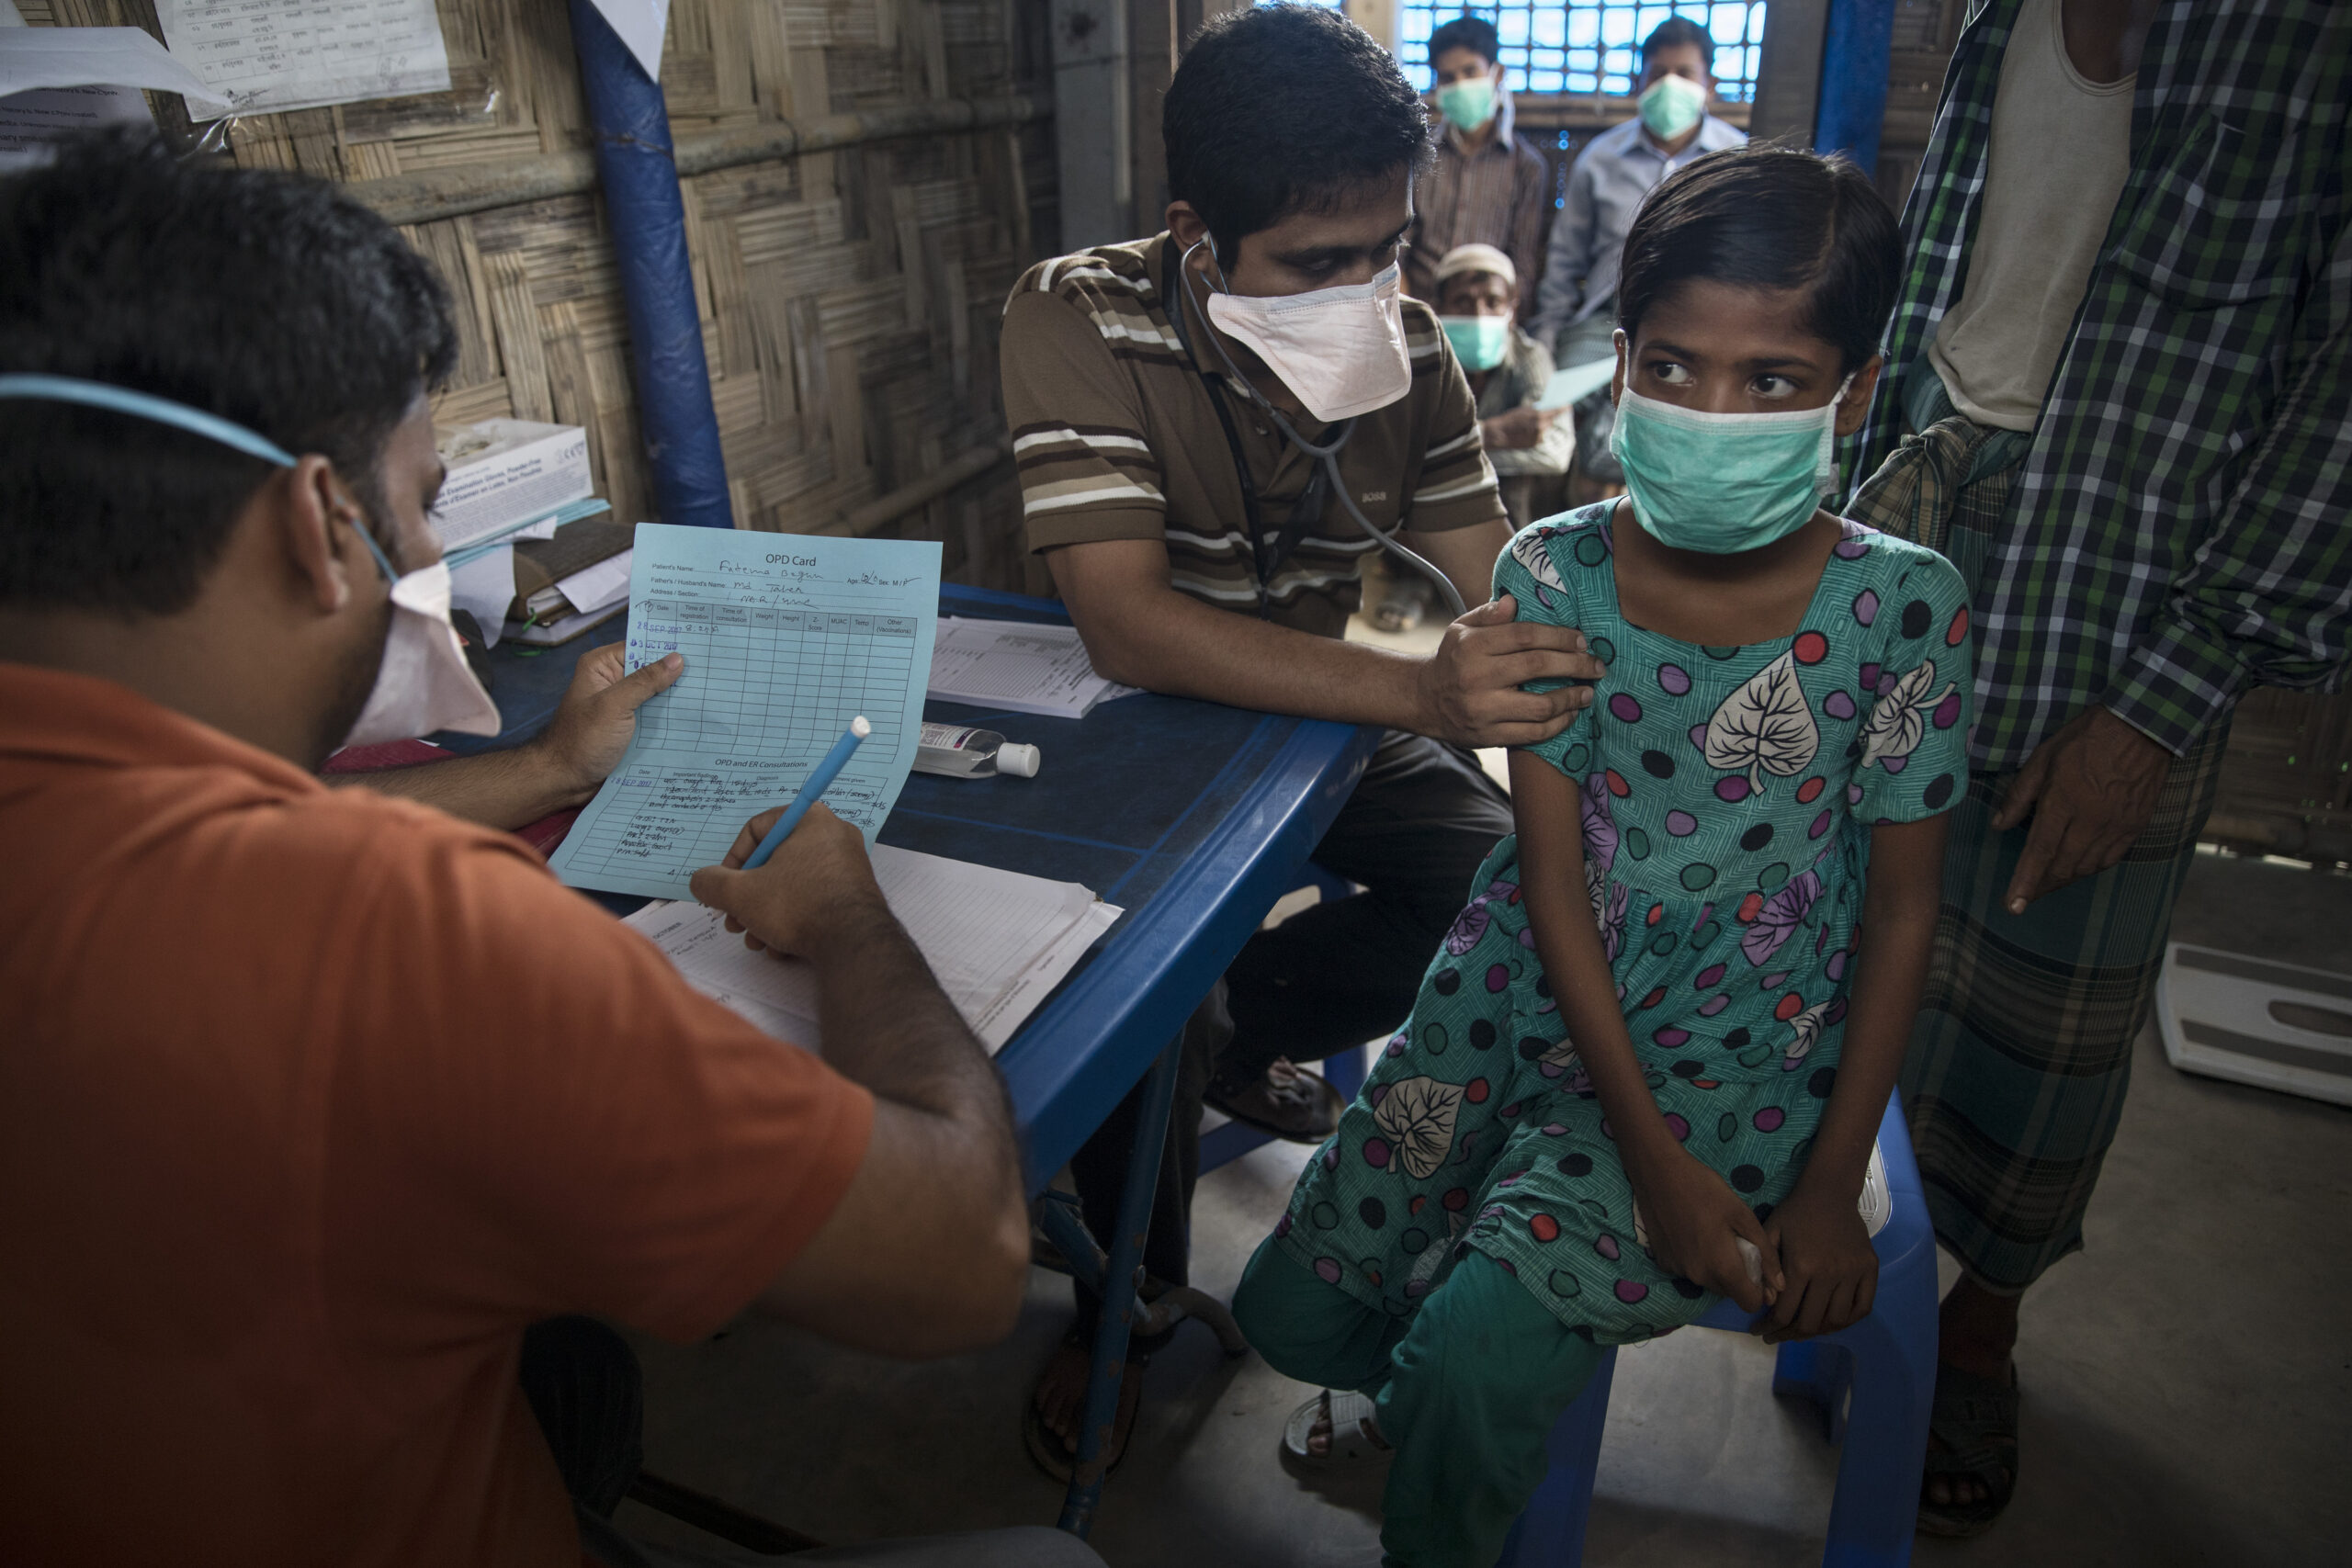 India Meets Only 29 Percent of Key Policies For TB: Report